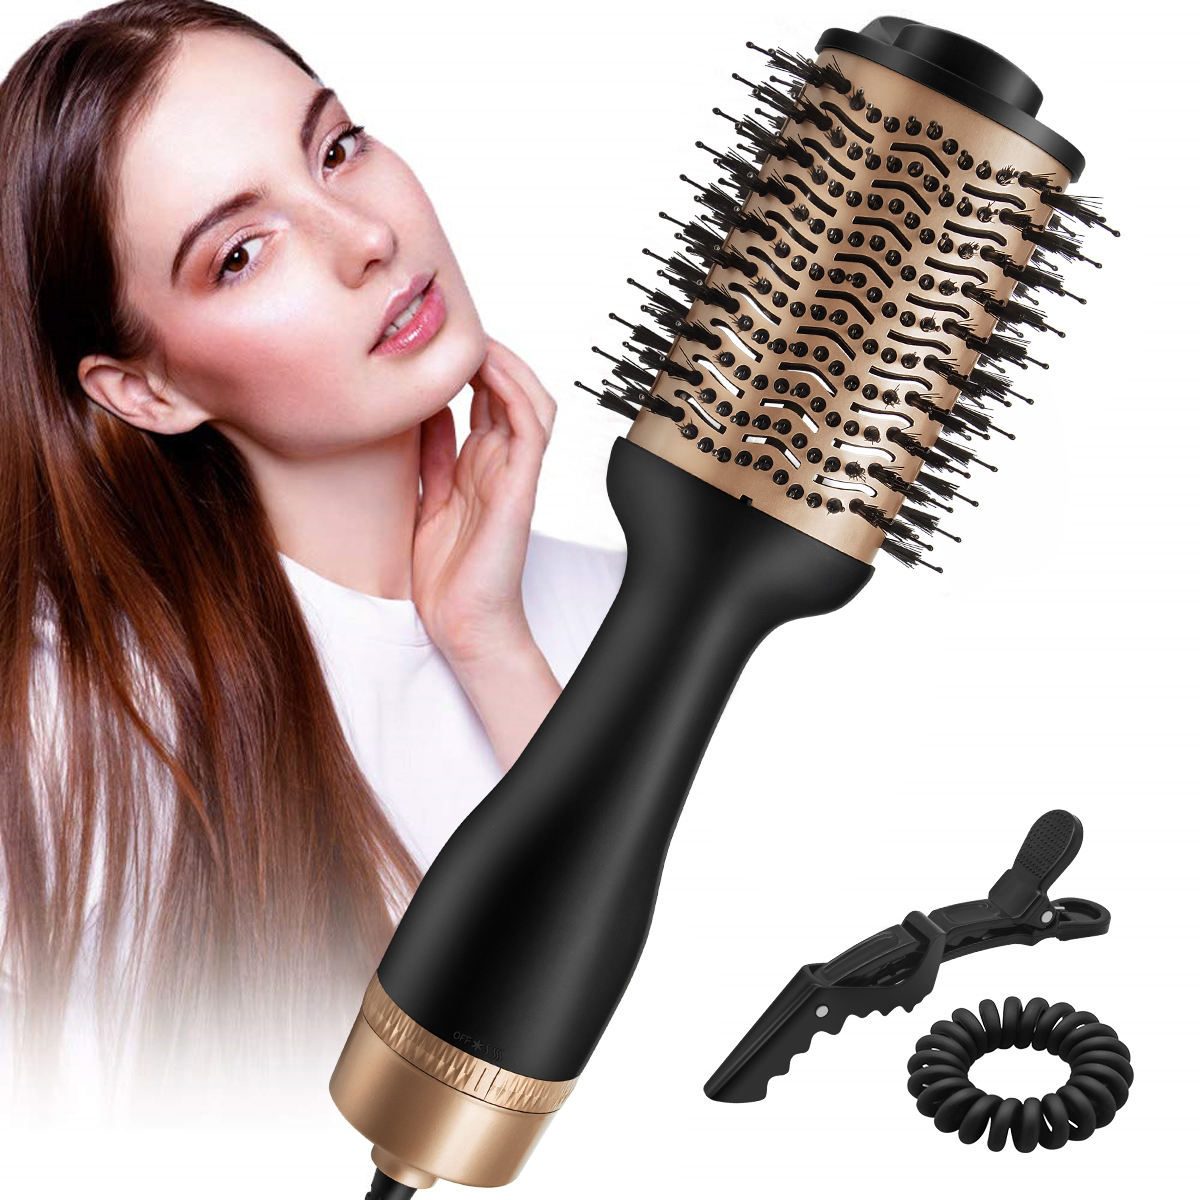 2020 Professional 5 In 1 Hair Dryer & Volumizing Brush 1200W One Step Hair Dryer And Styler Electric Hot Air Brush